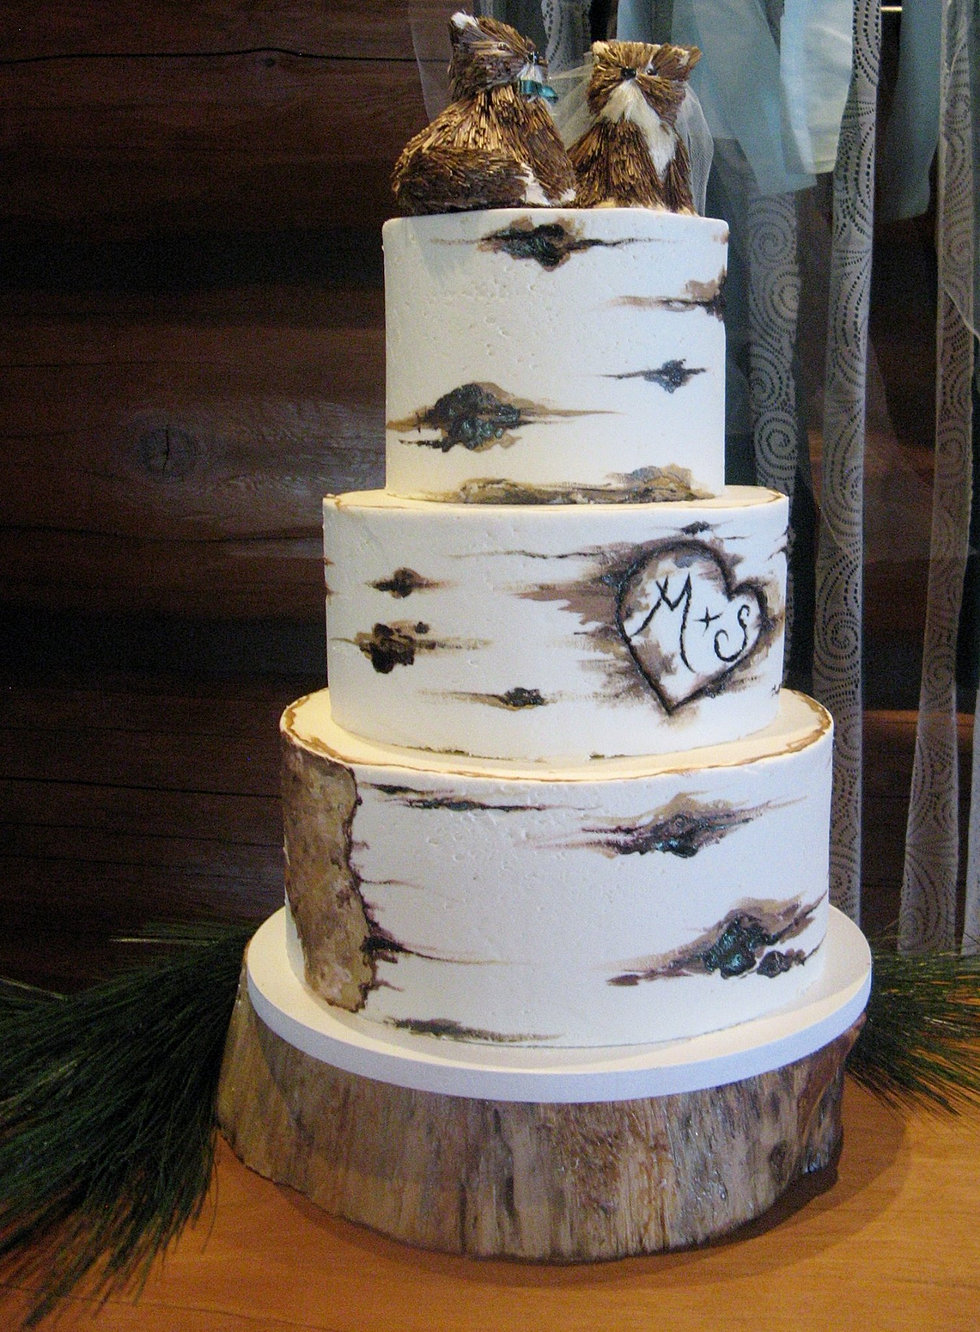 Aspen Birch Wedding Cakes 10733880 992457227448180 7827839145683856332 O 10733929 979277305432839 5432742871132557468